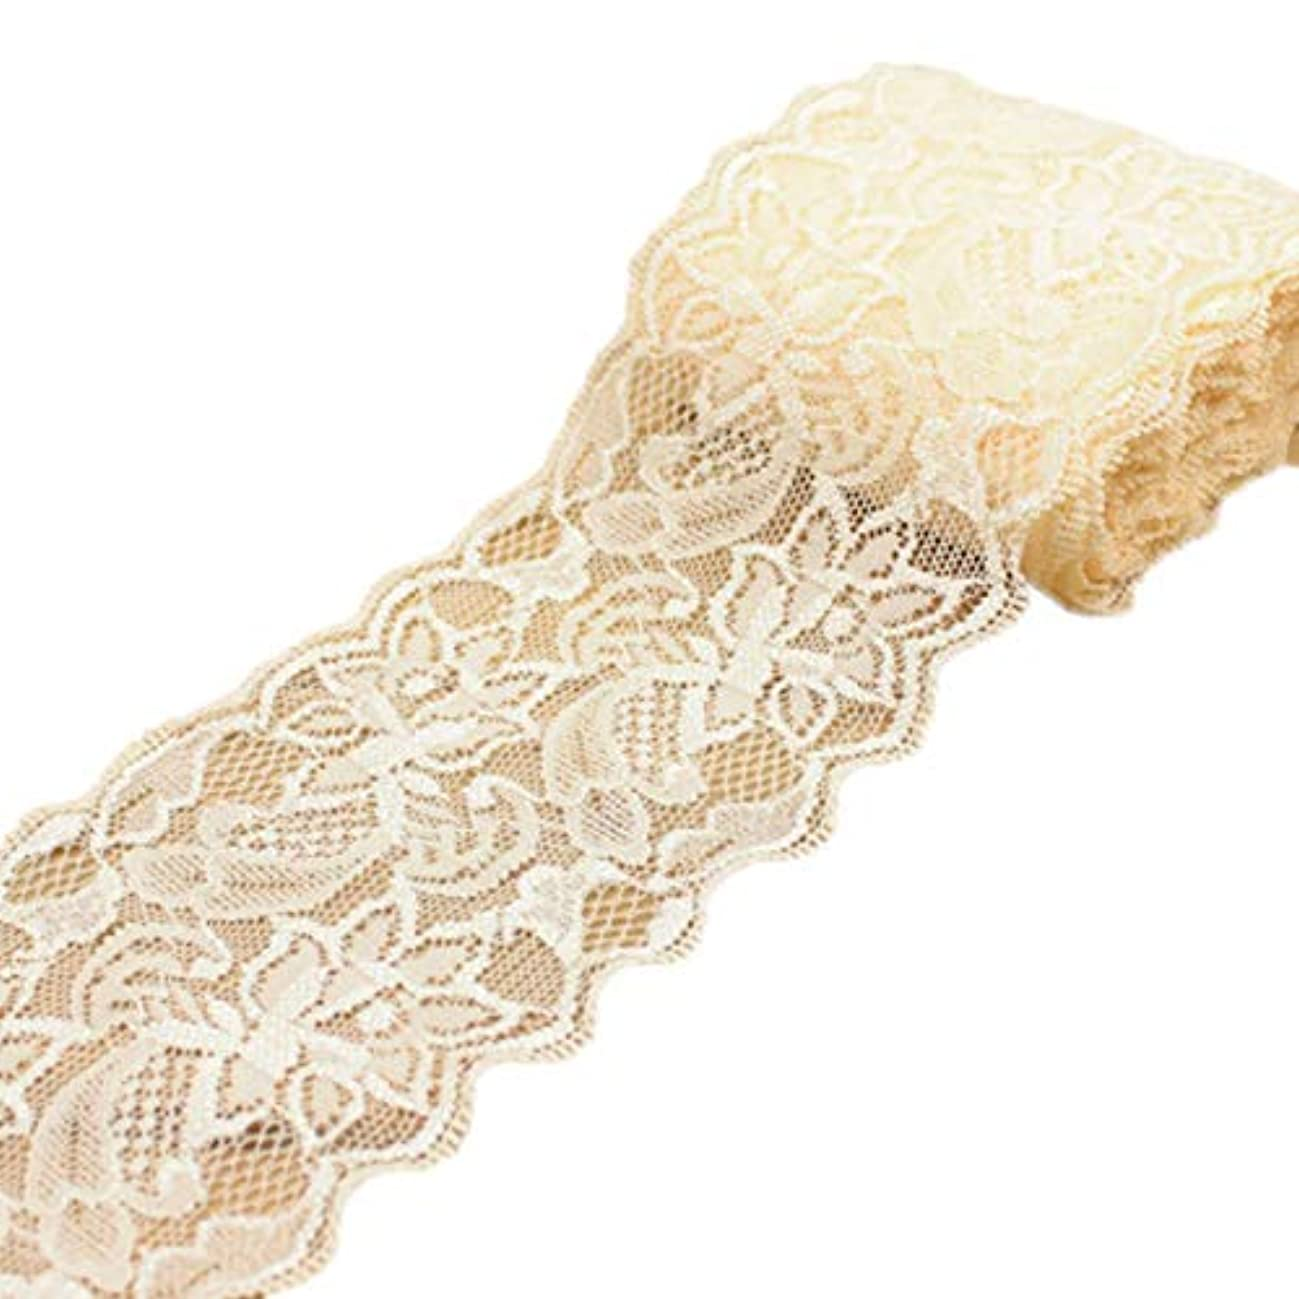 Mesyo Lace Ribbon for Crafts 5 Yards Floral Fabric Lace Trim for Wedding Invitation Decorating Gift Package Wrapping 3.1 Inch Wide Light Champagne